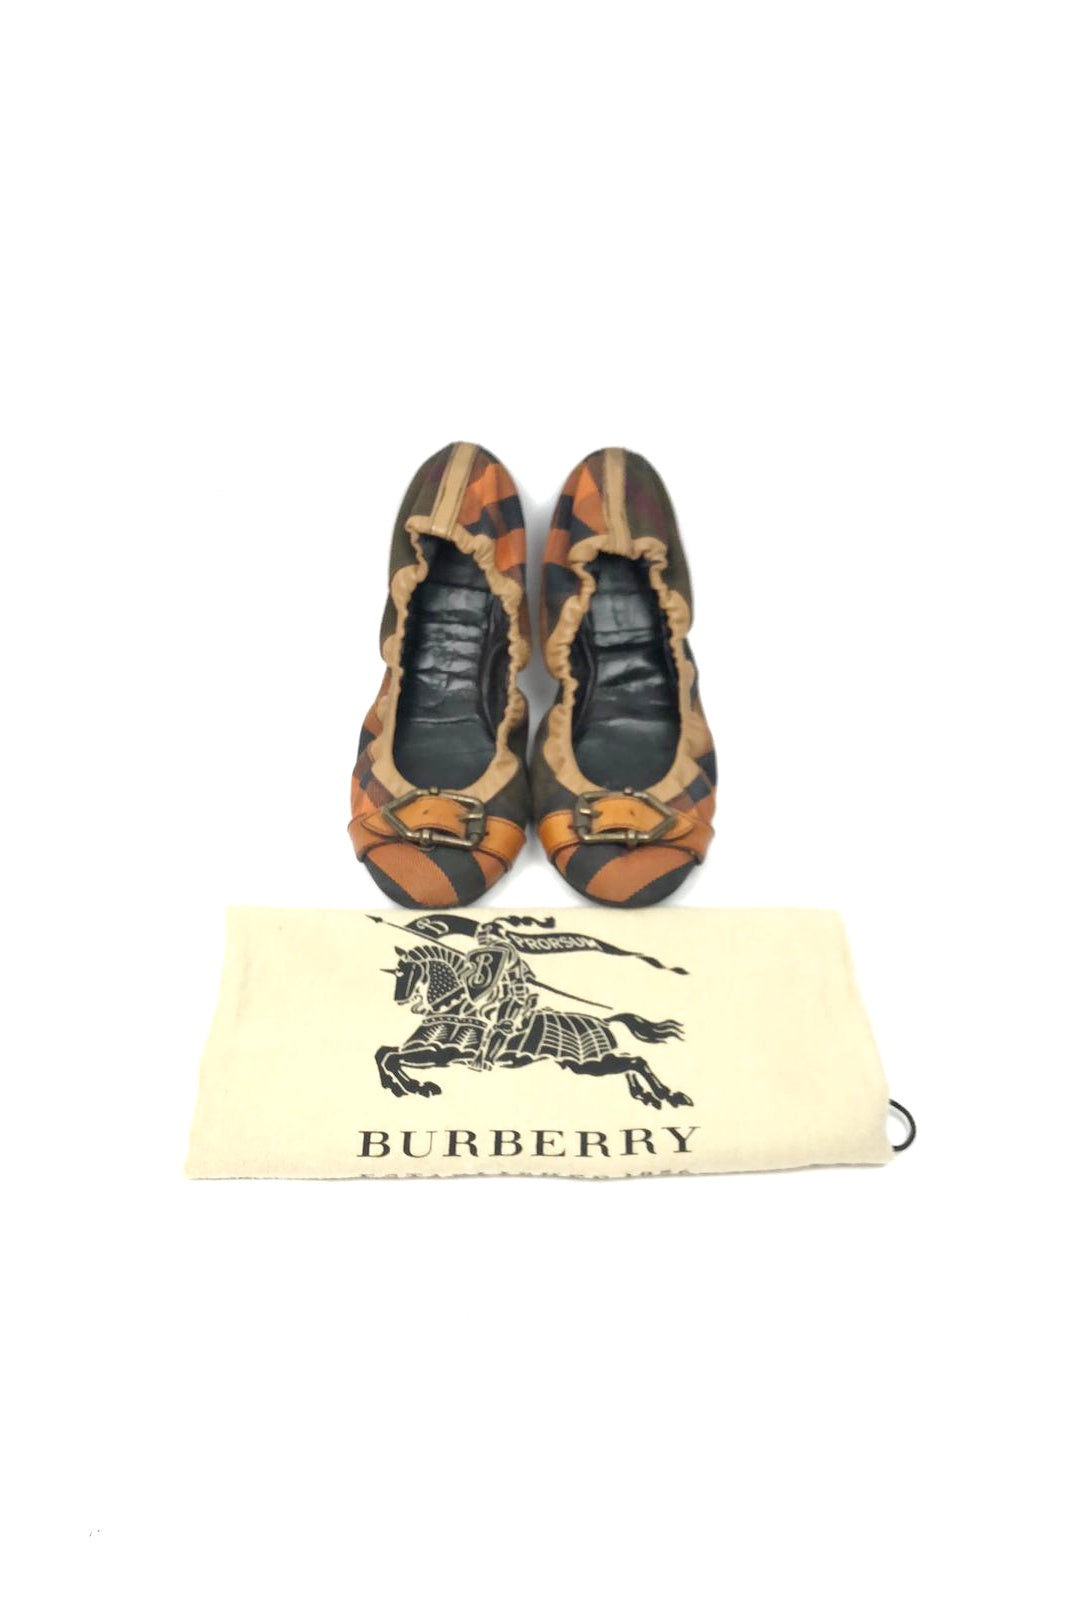 BURBERRY Brown/Orange Canvas Ballet Flats AGHW